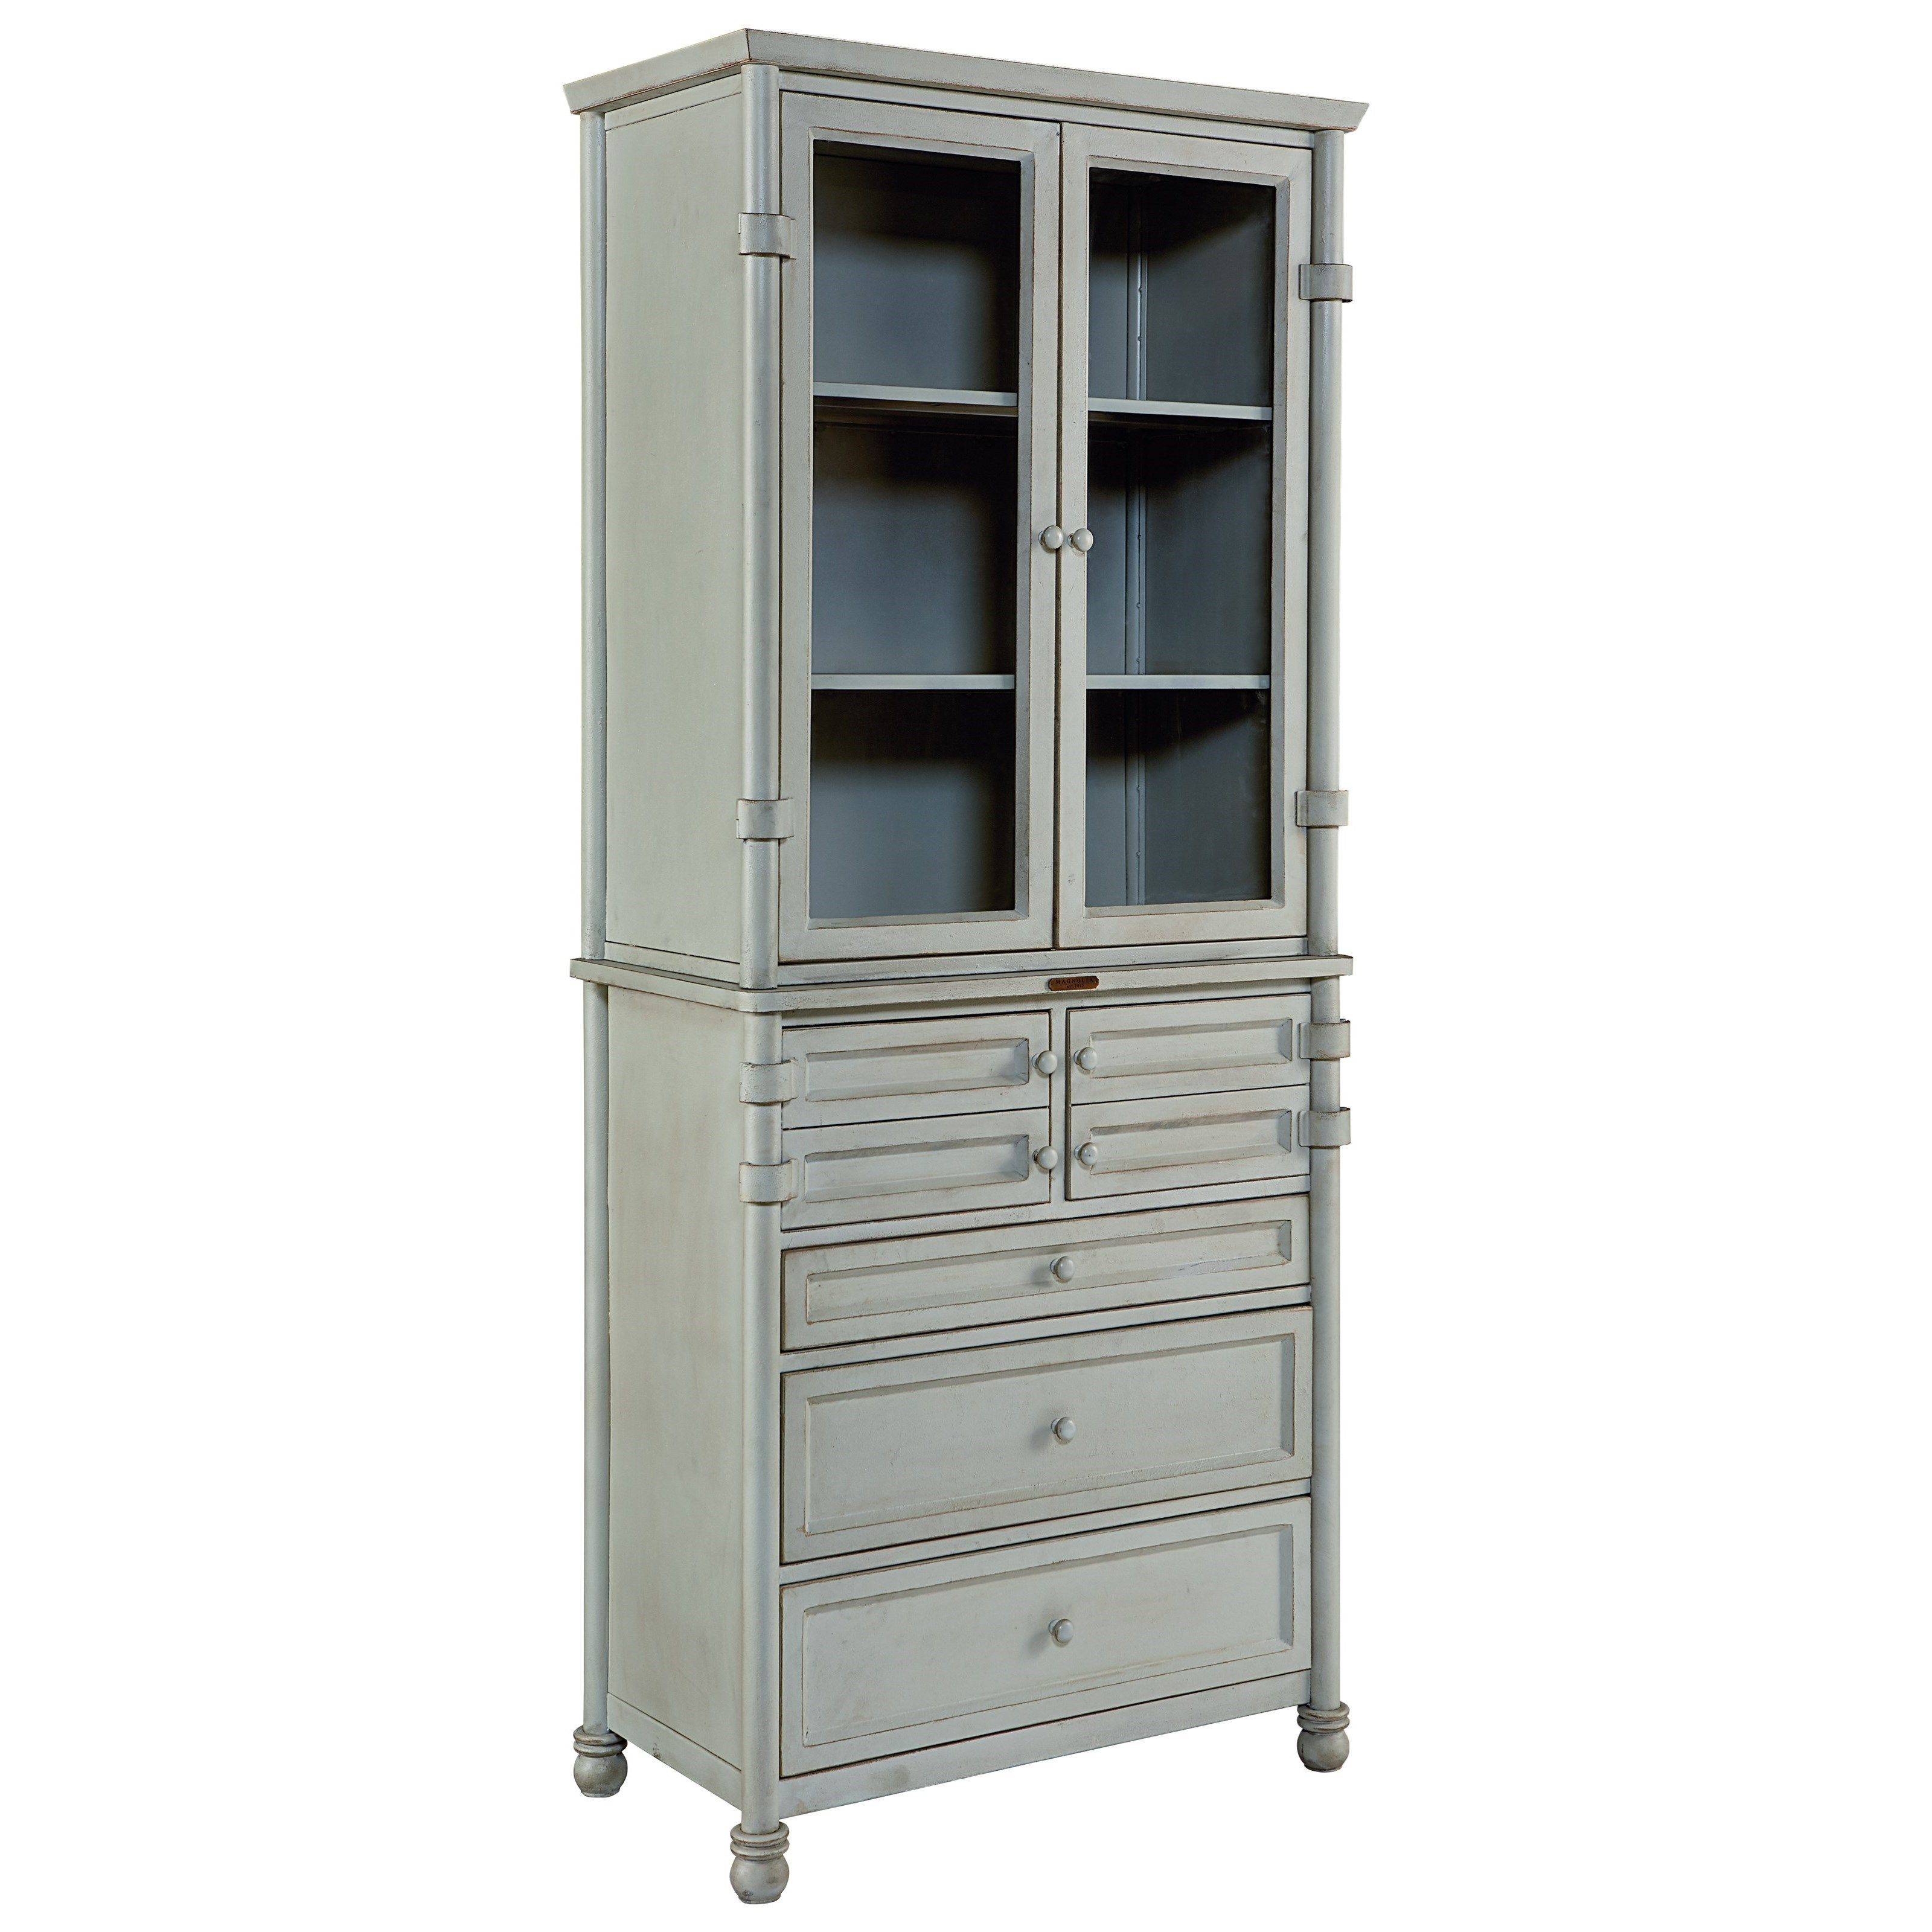 Industrial Metal Dispensary Cabinet By Magnolia Home By Joanna Gaines